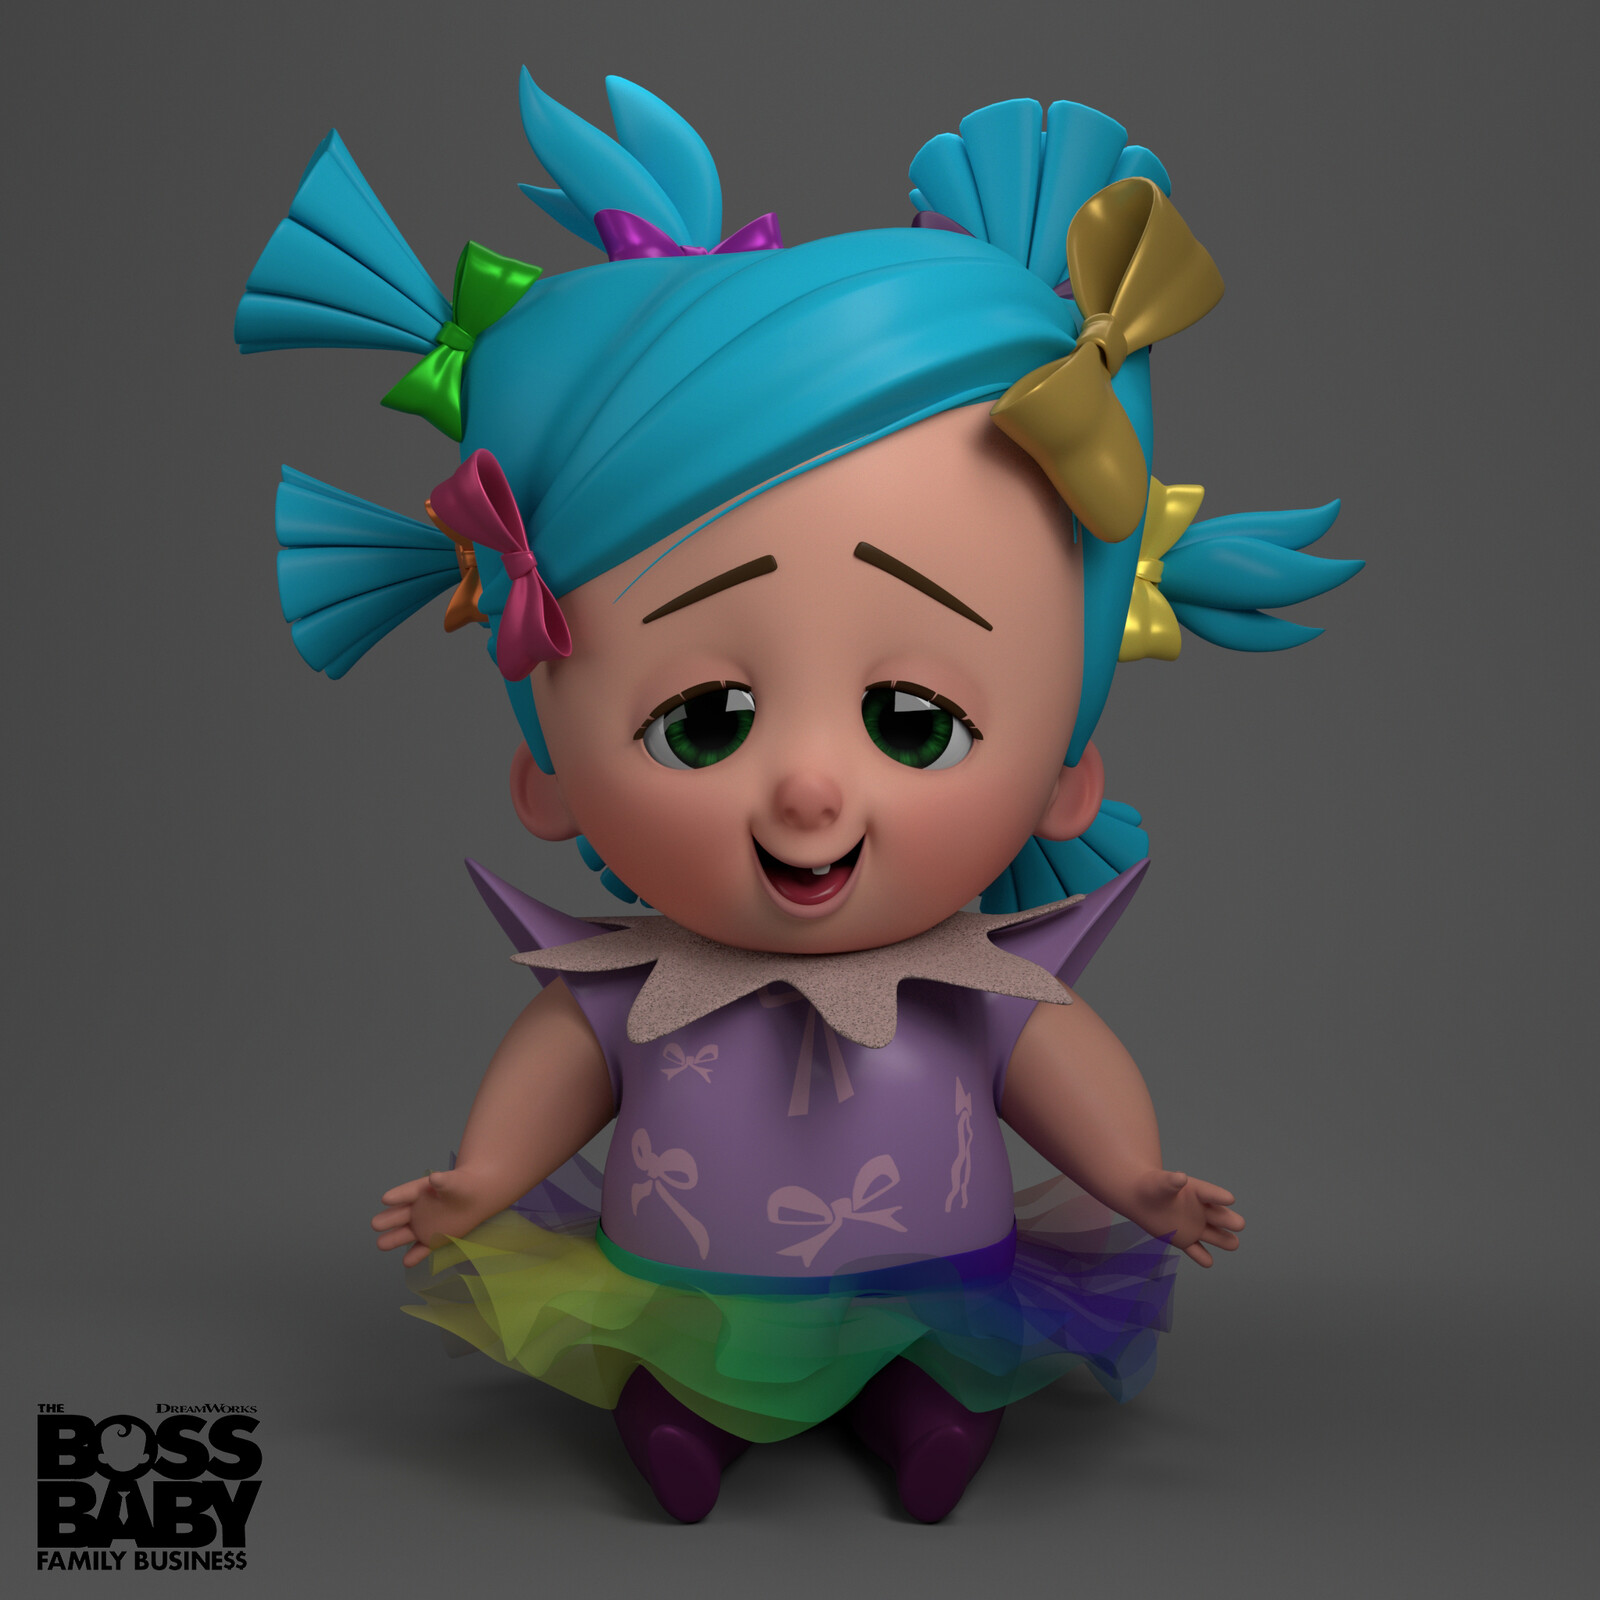 Little Bo Peep from The Boss Baby: Family Business